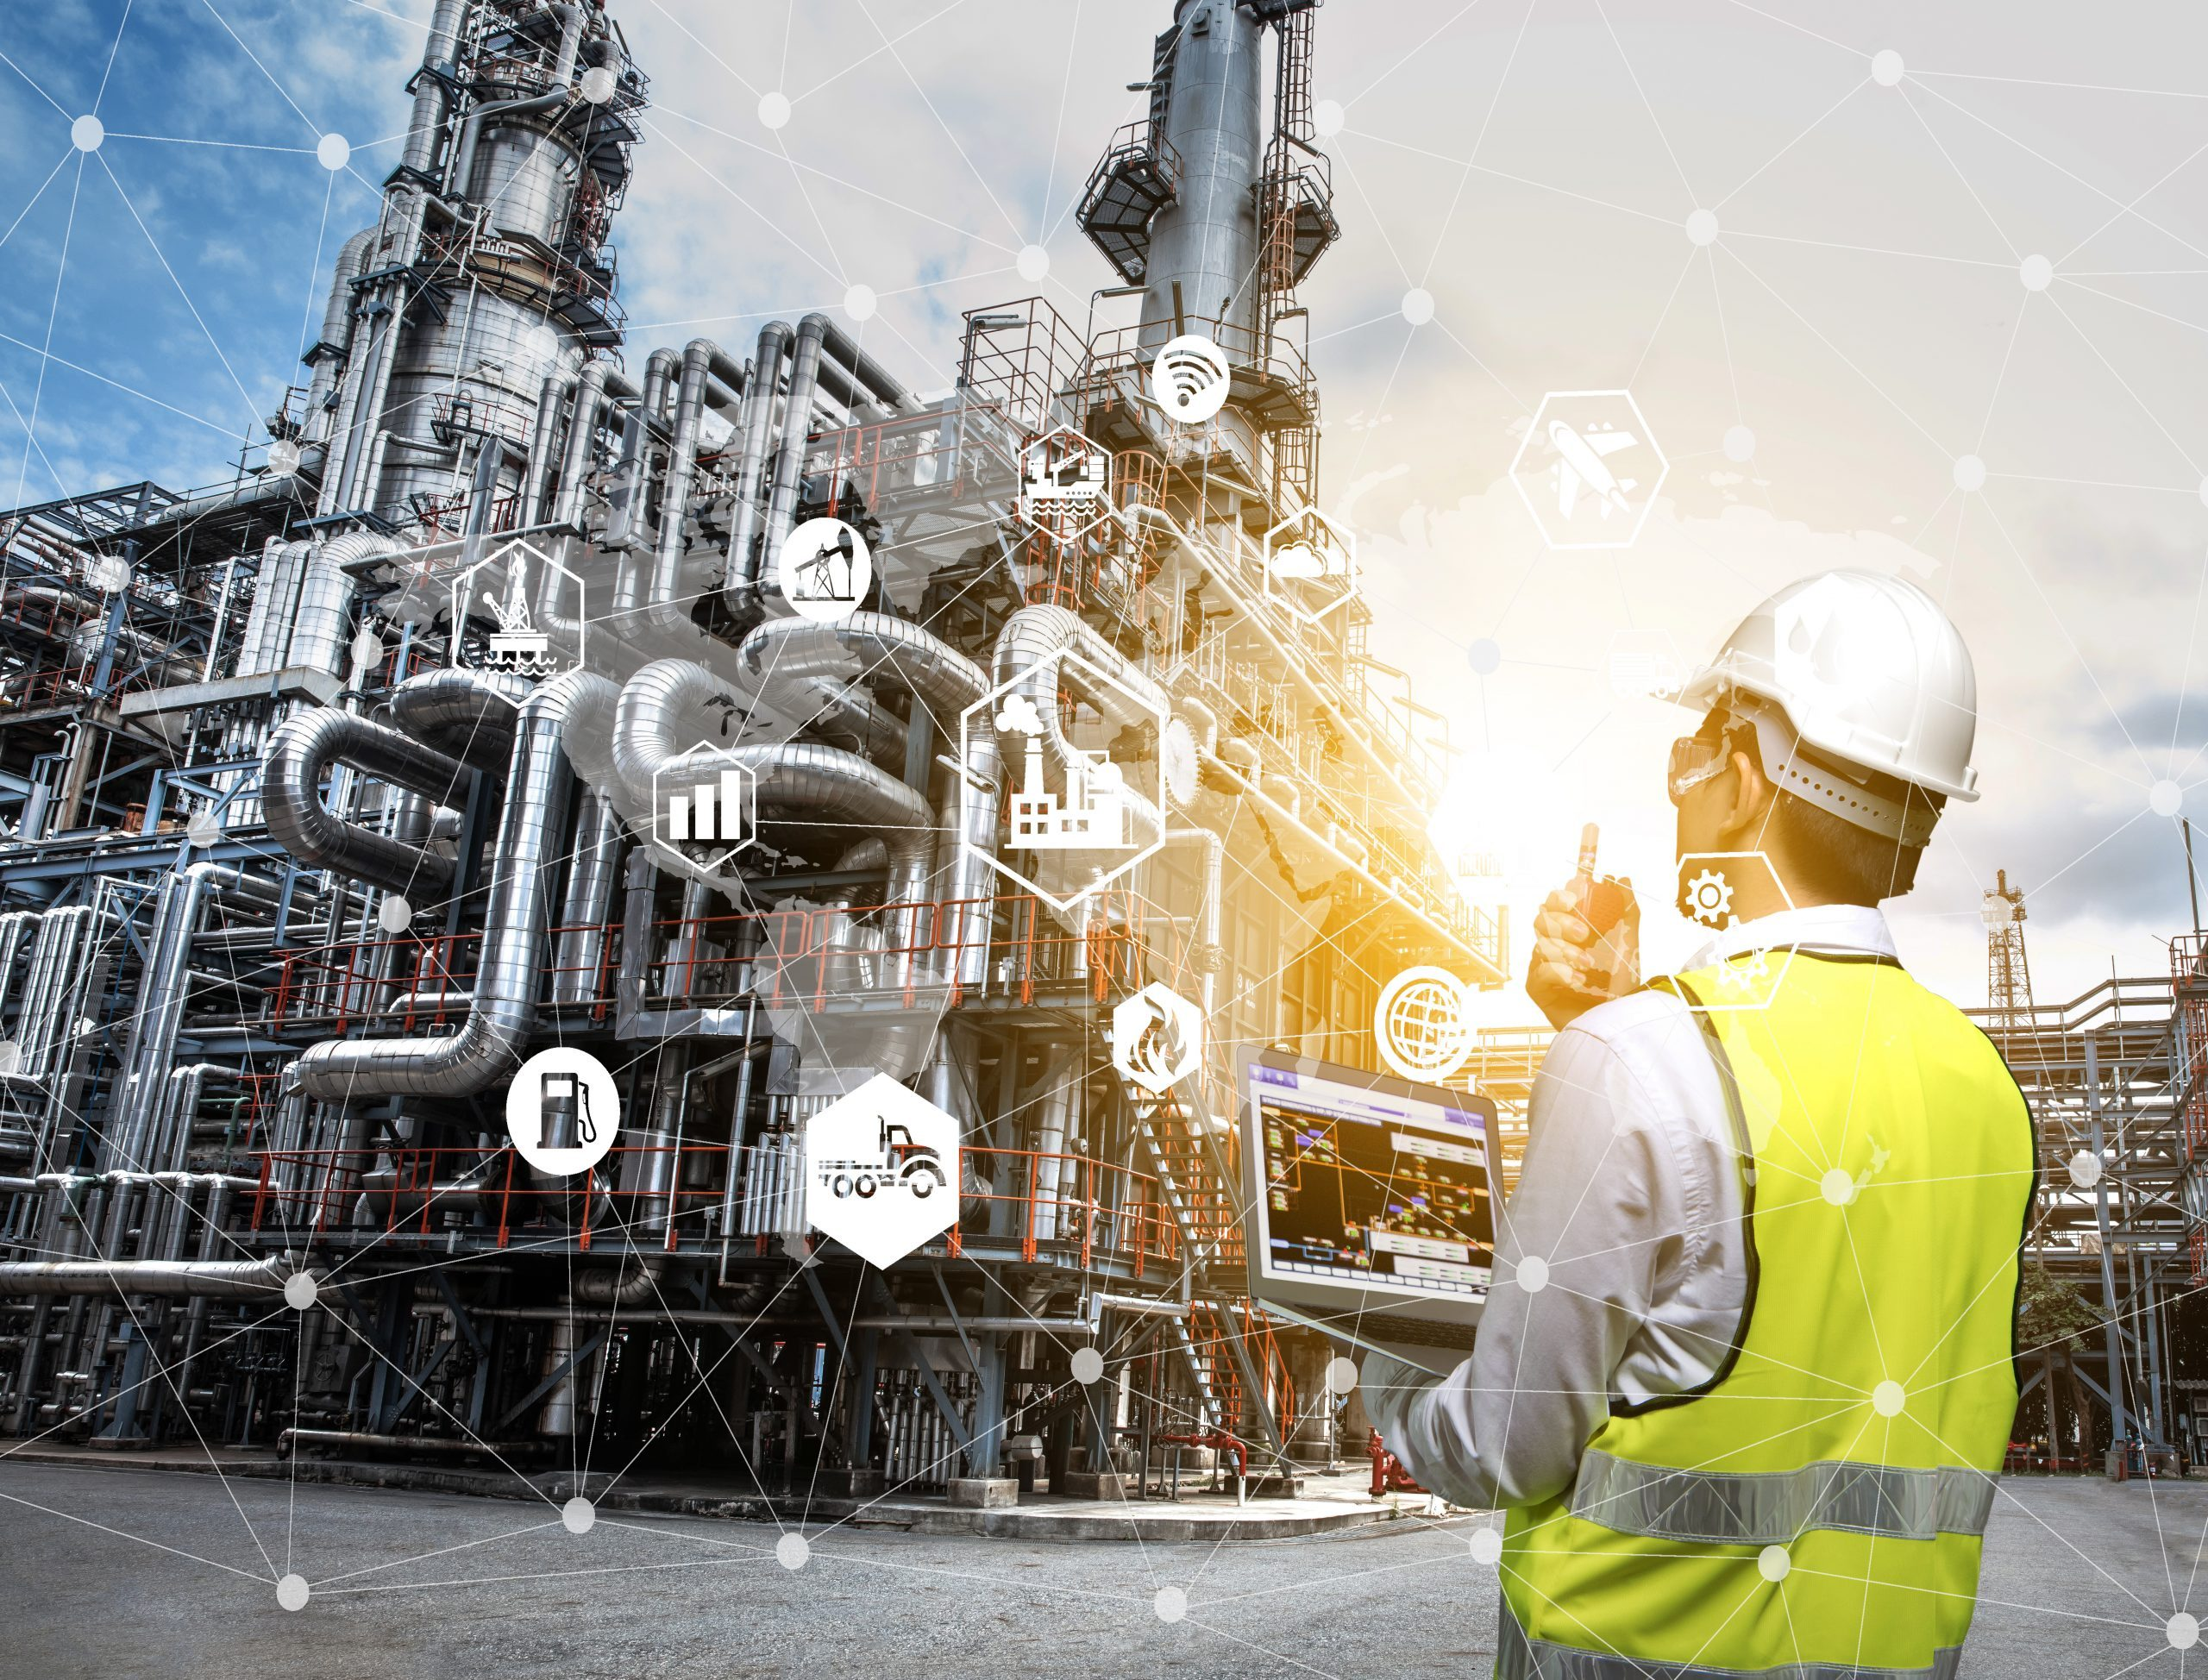 Double exposure of engineer holding walkie talkie are working orders the oil and gas refinery plant. Industry petrochemical concept image and icon connecting networking using technology.